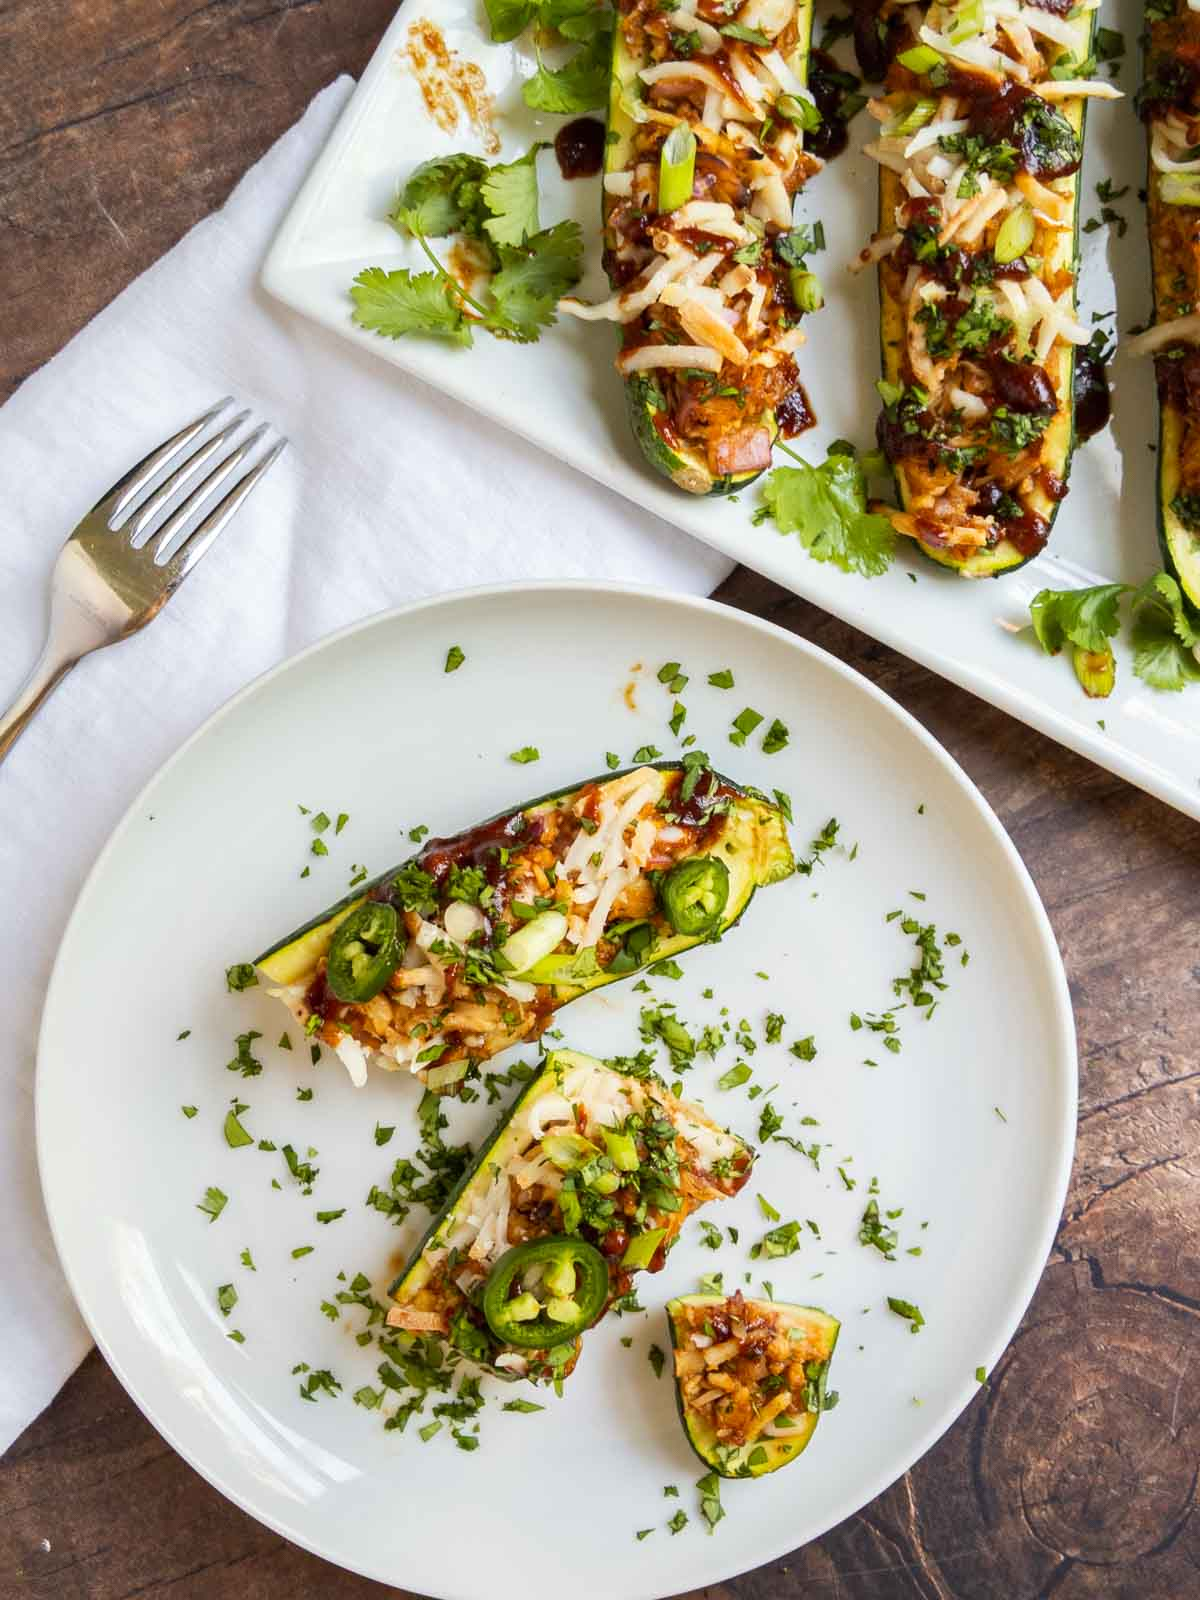 Serving and eating zucchini boats